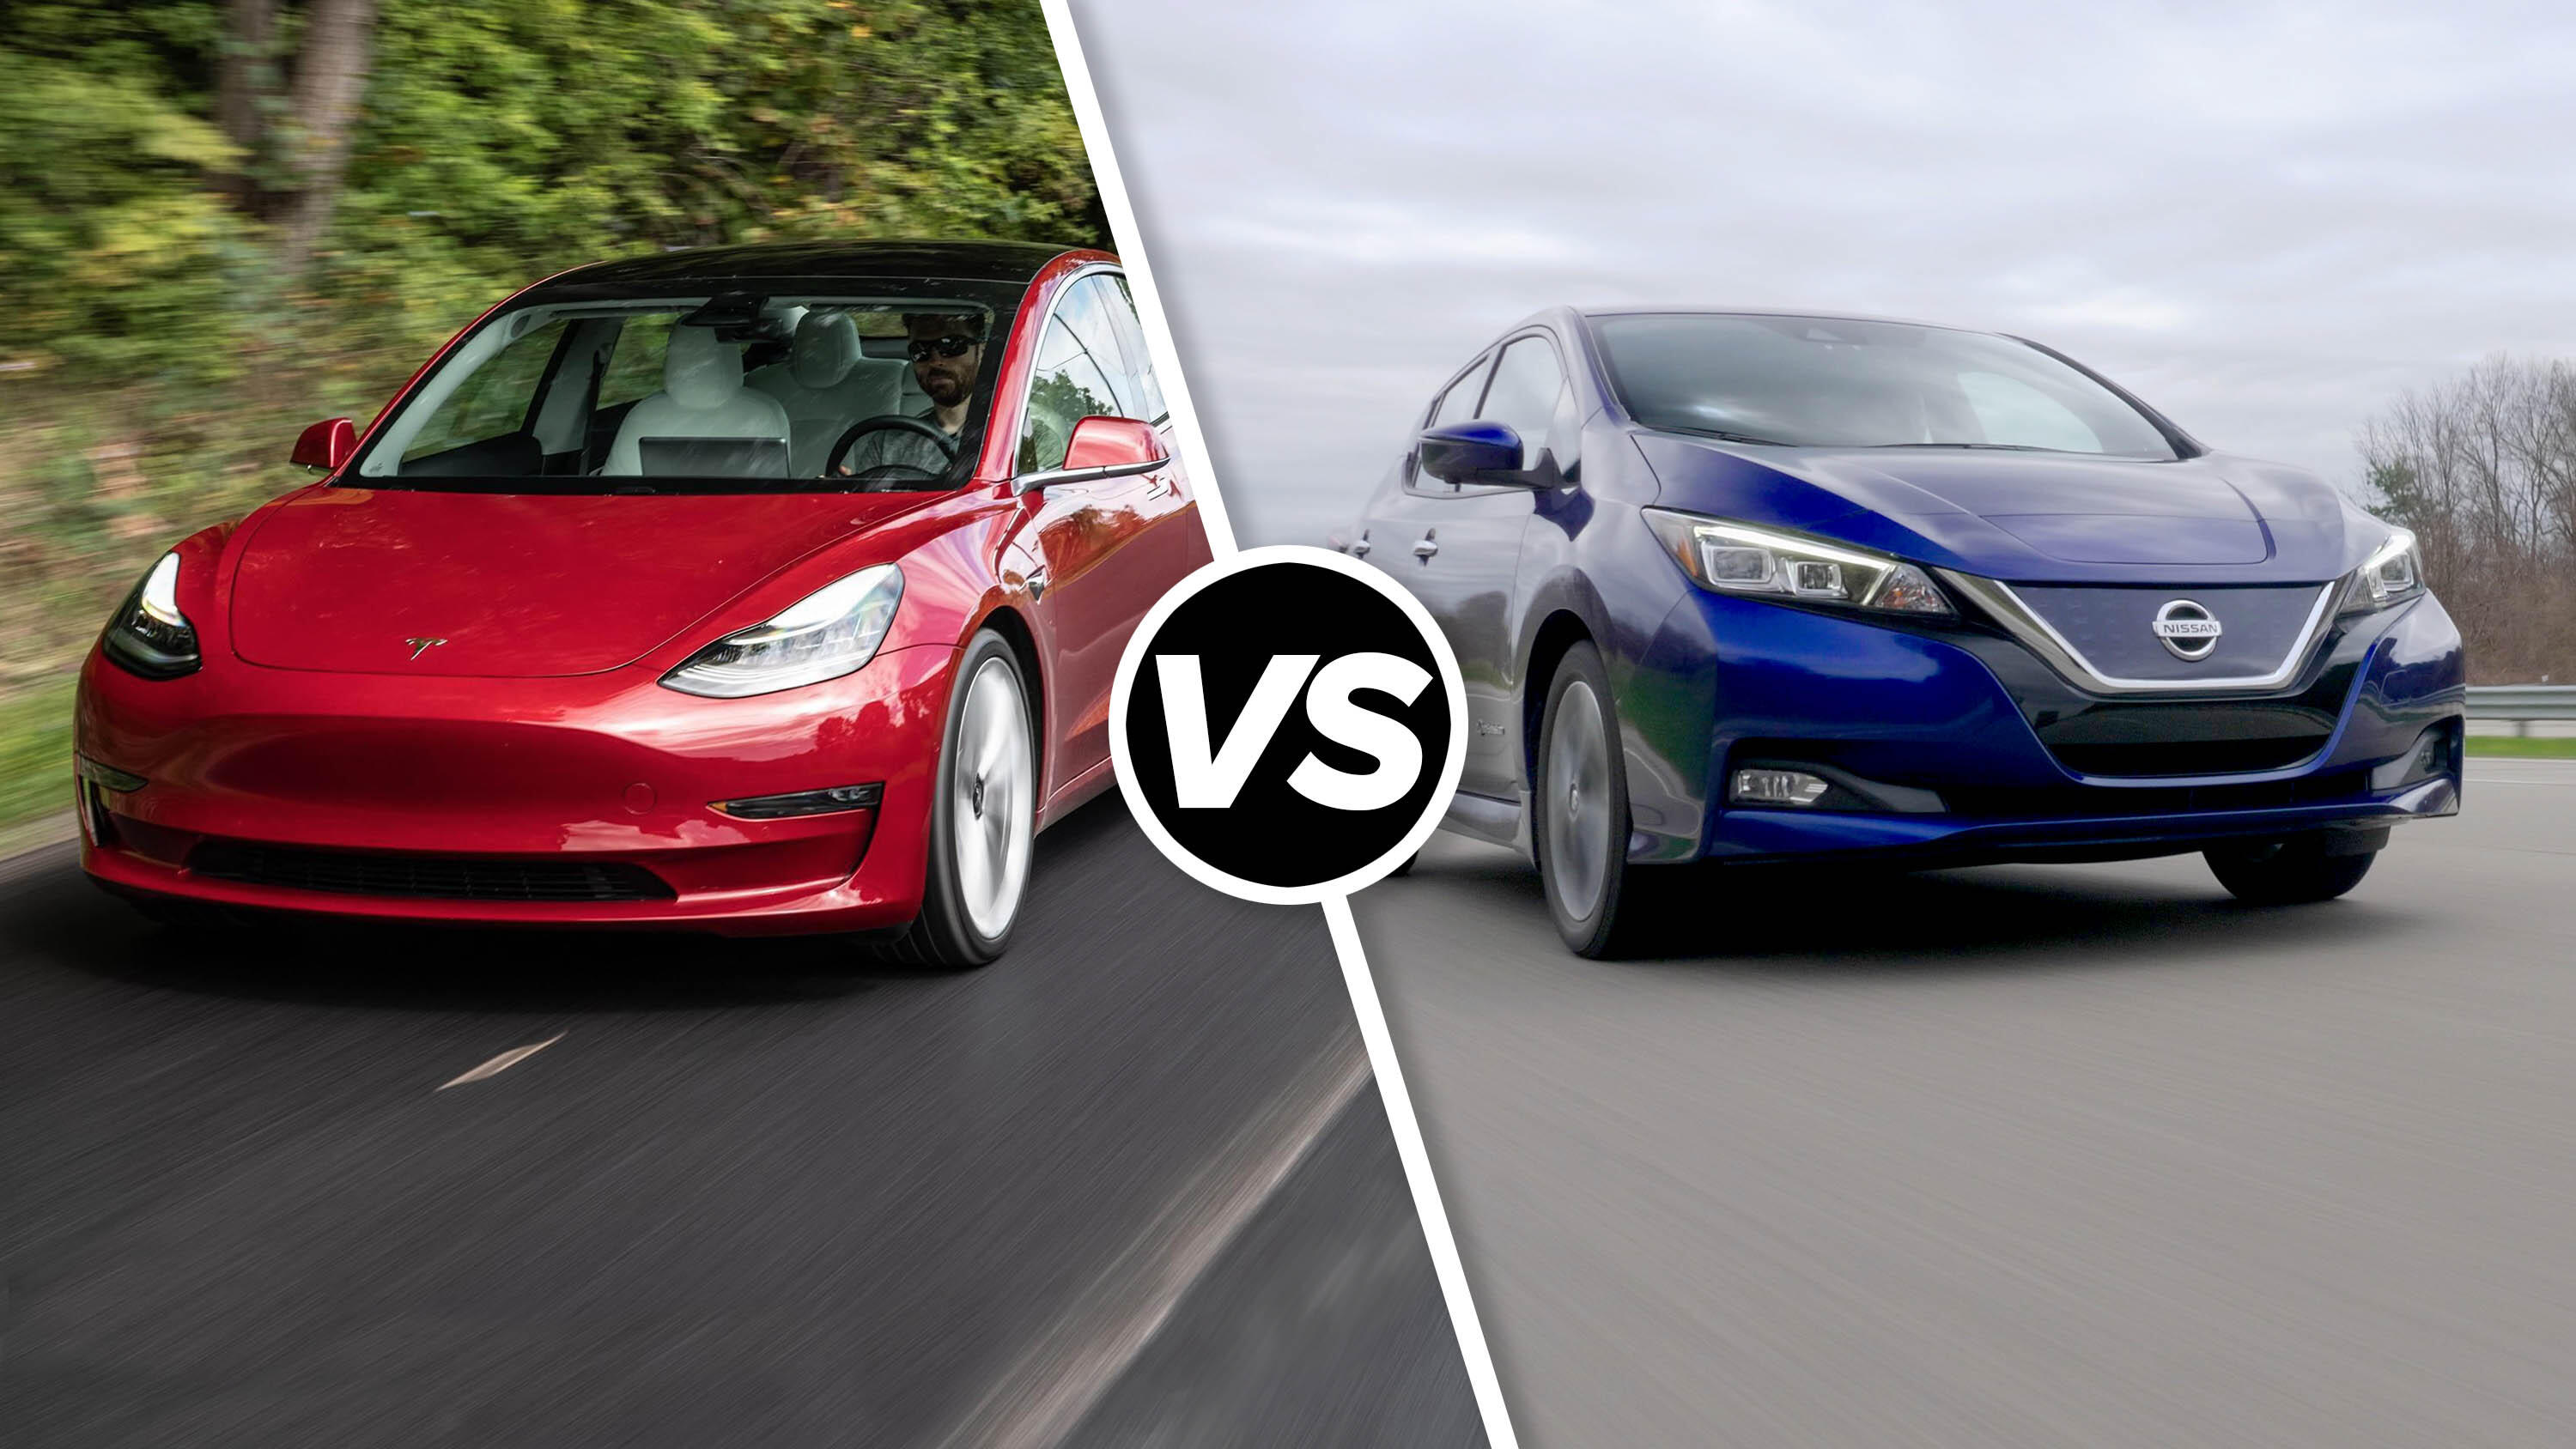 Video: Tesla Model 3 vs. Nissan Leaf: EVs do battle